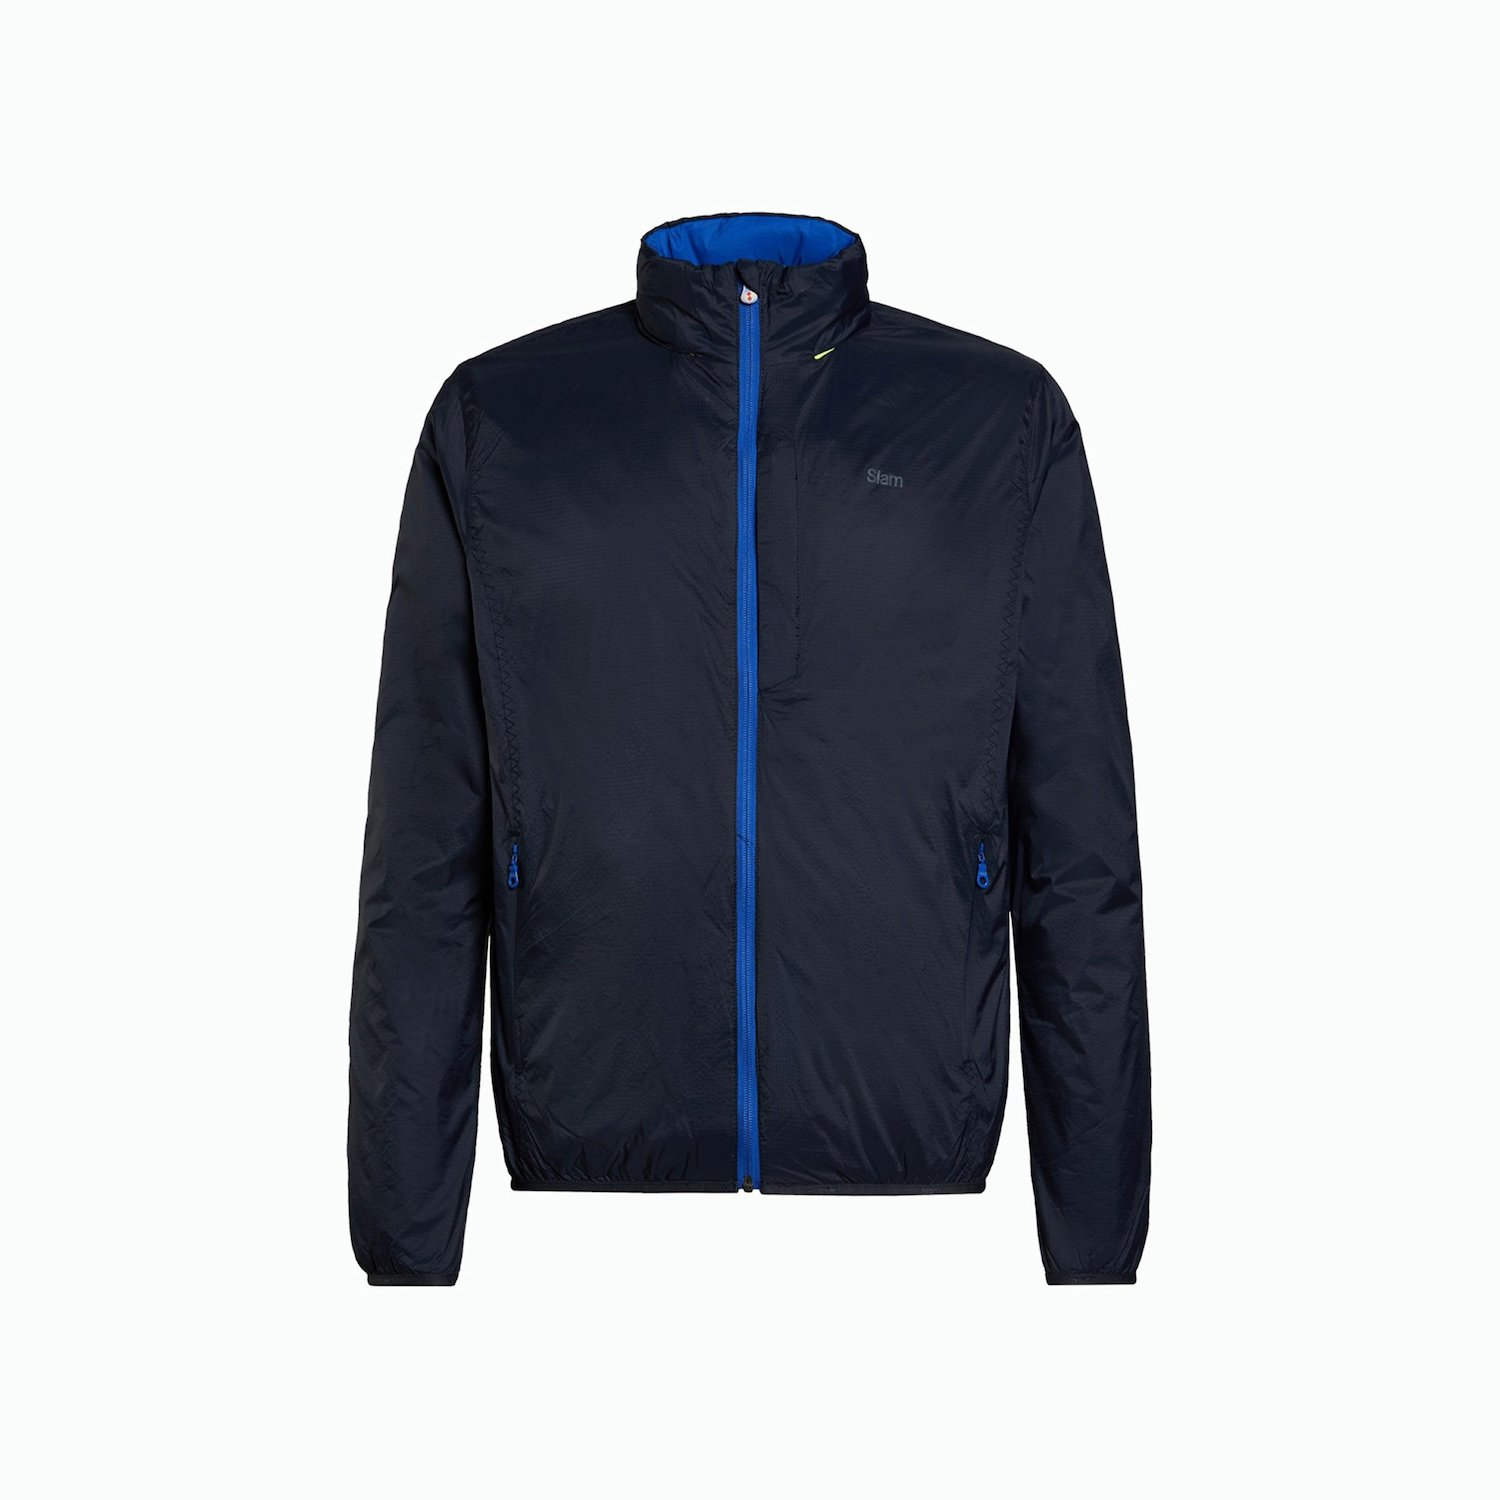 Blow Evo jacket - Navy